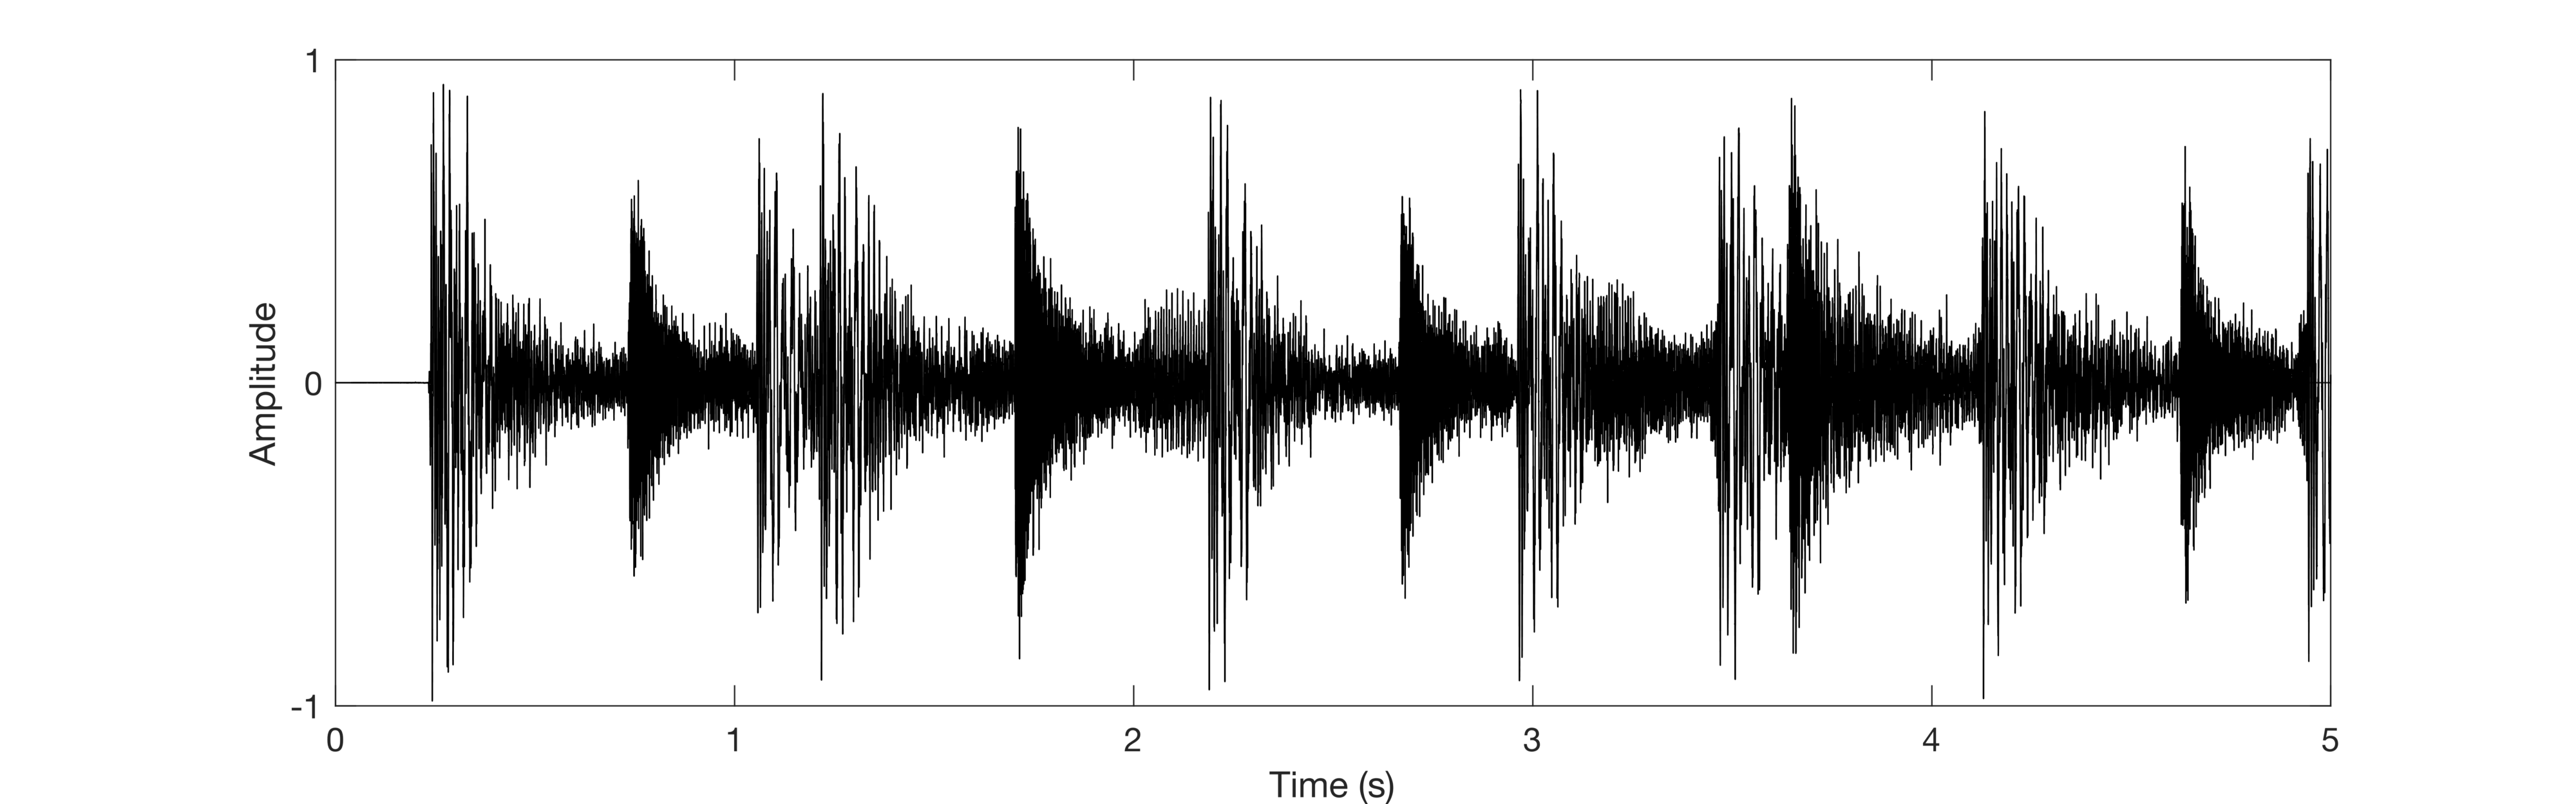 An overview of audio recognition methods - Intrasonics - Medium